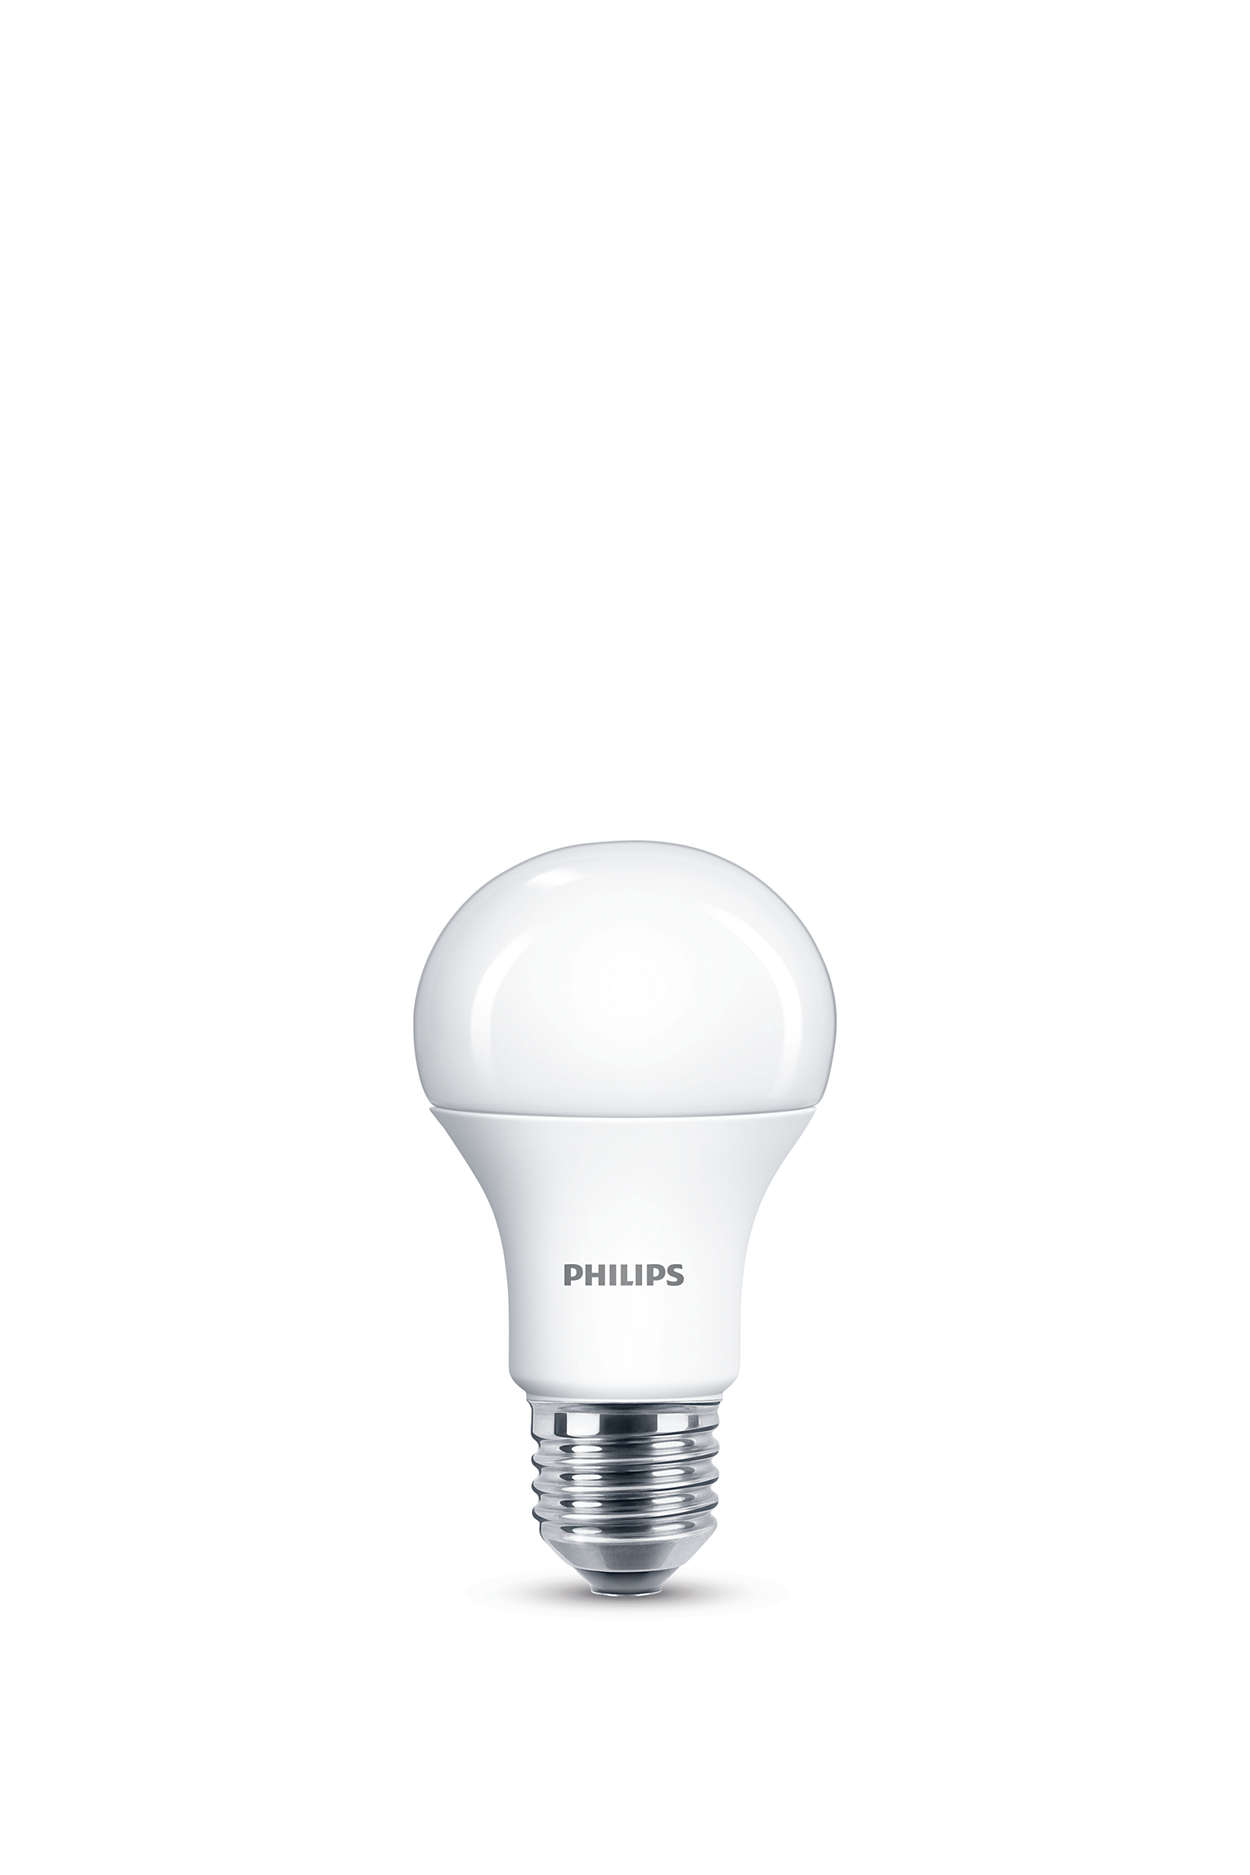 Soft white light, no compromise on light quality